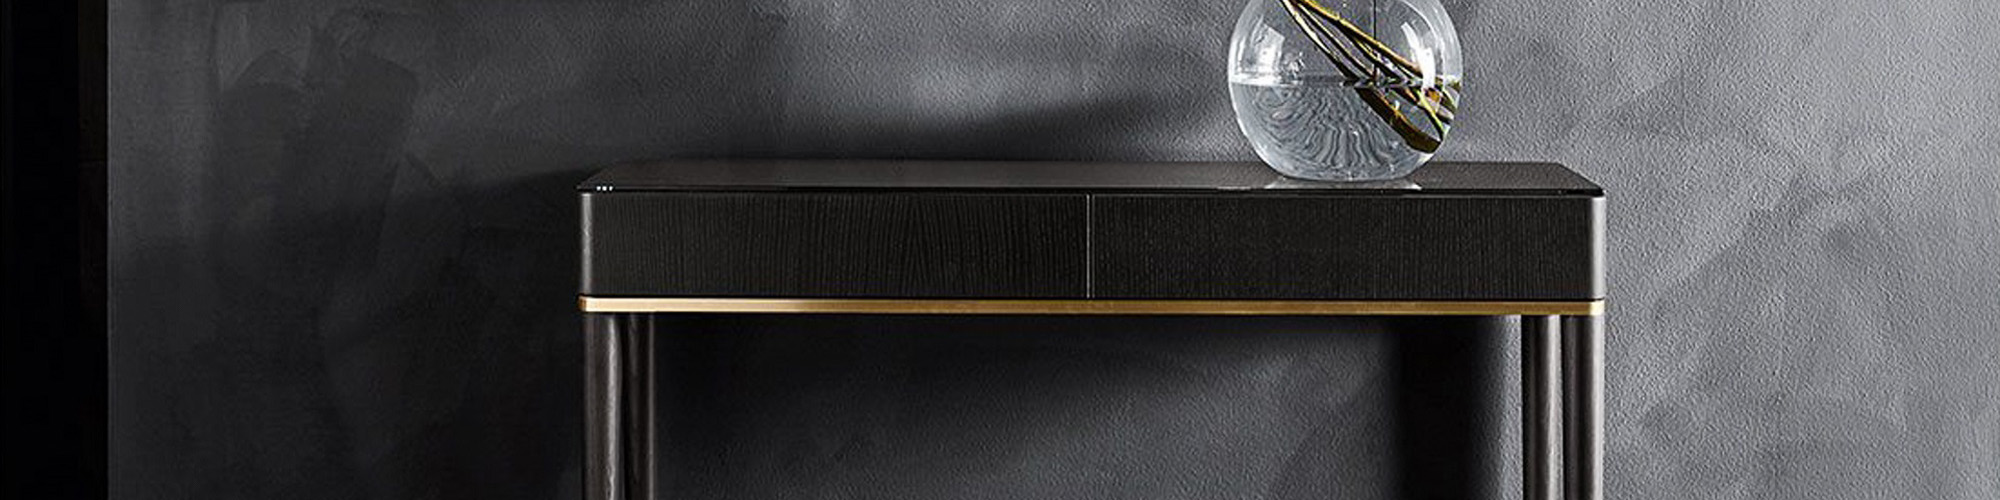 Gallotti & Radice Furniture